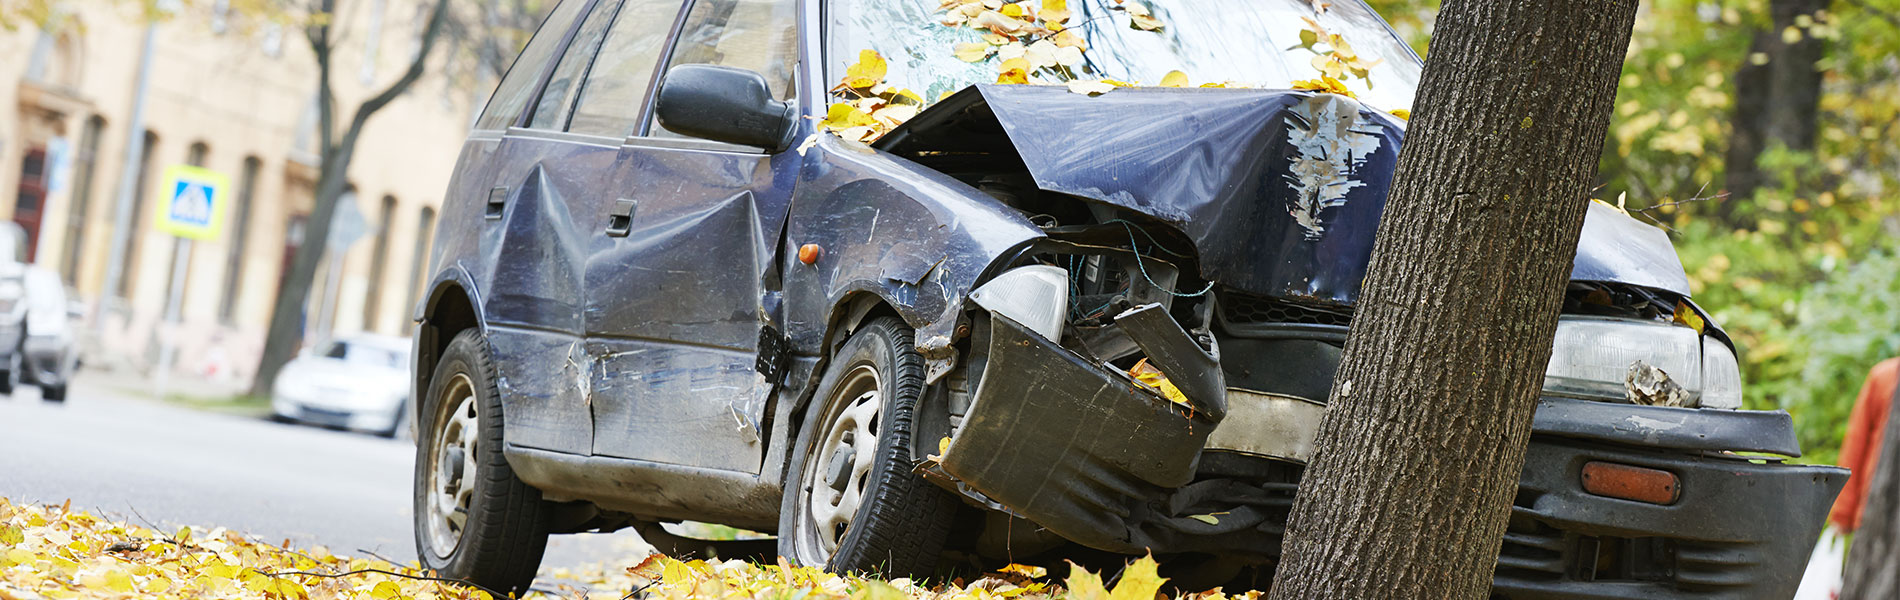 Seminole County Single-Vehicle Accident Attorney